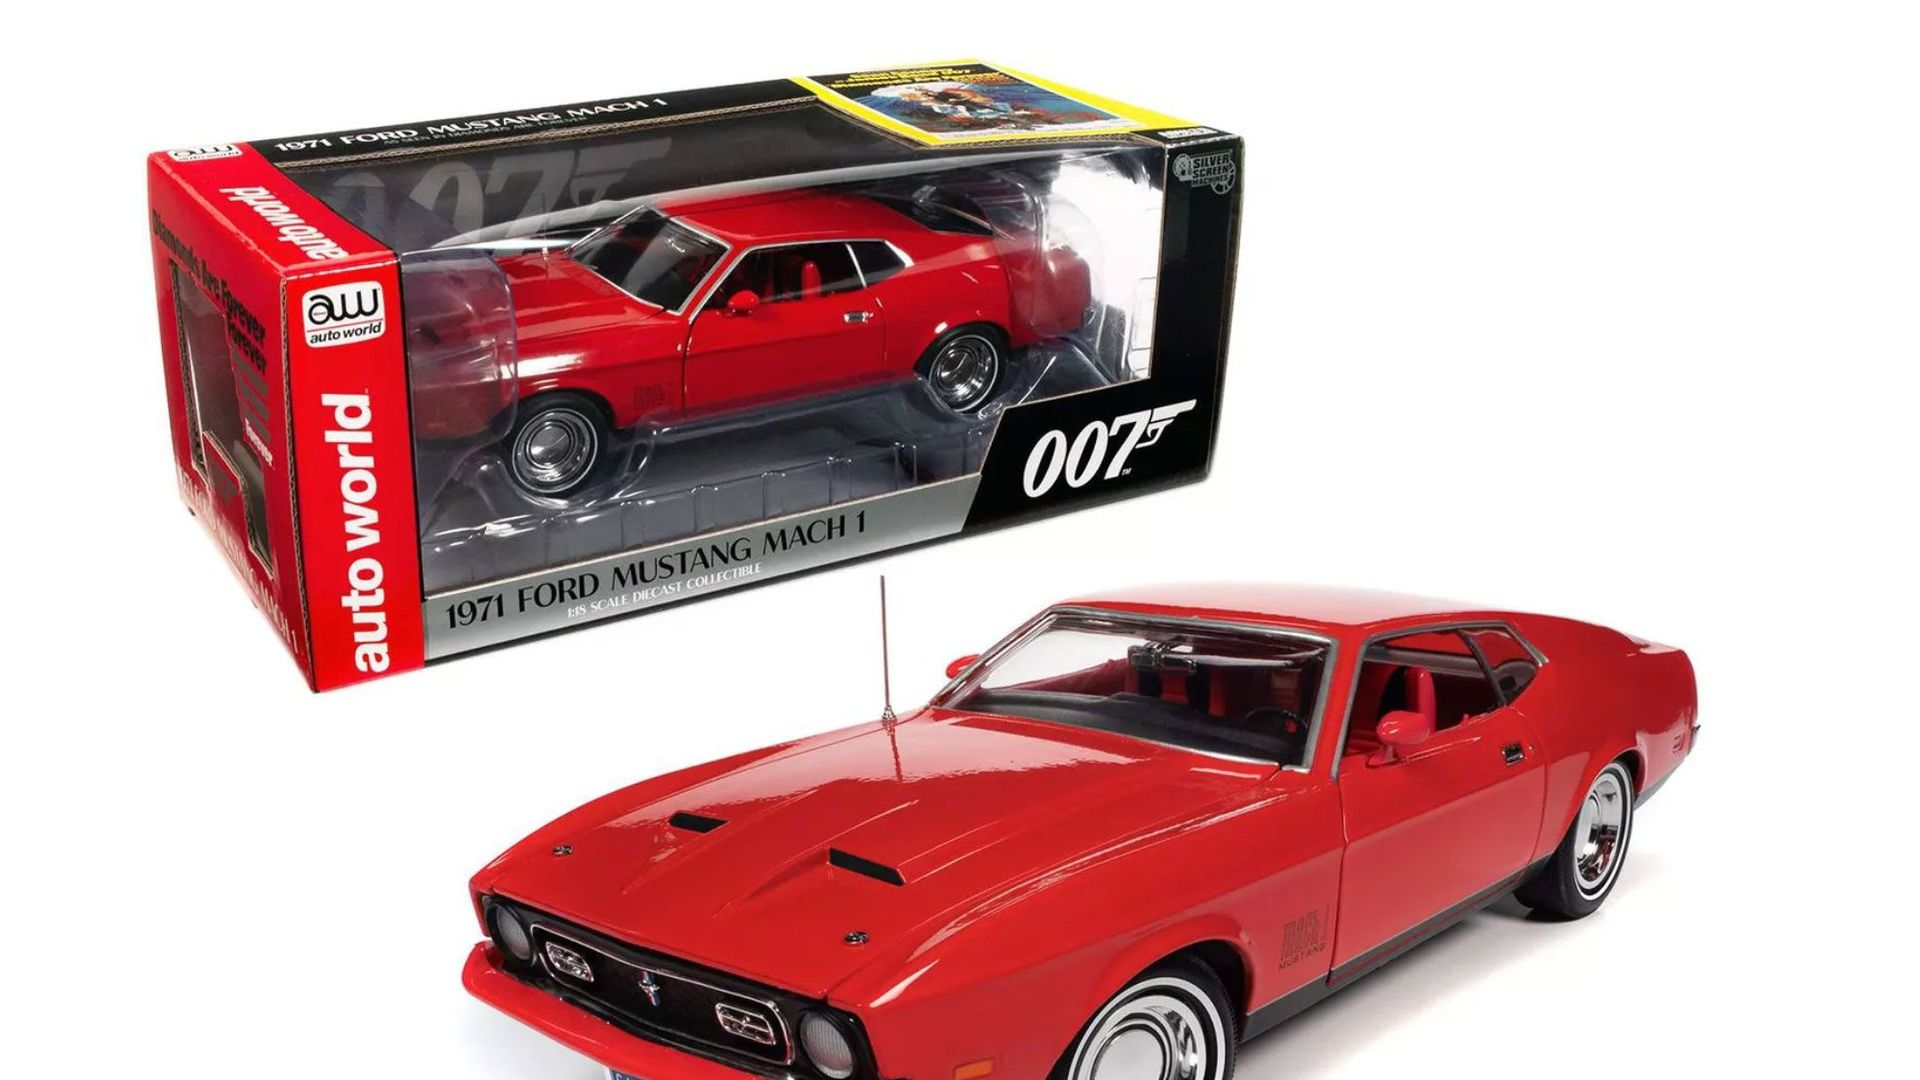 1971 Ford Mustang Mach 1 Diecast Model Car